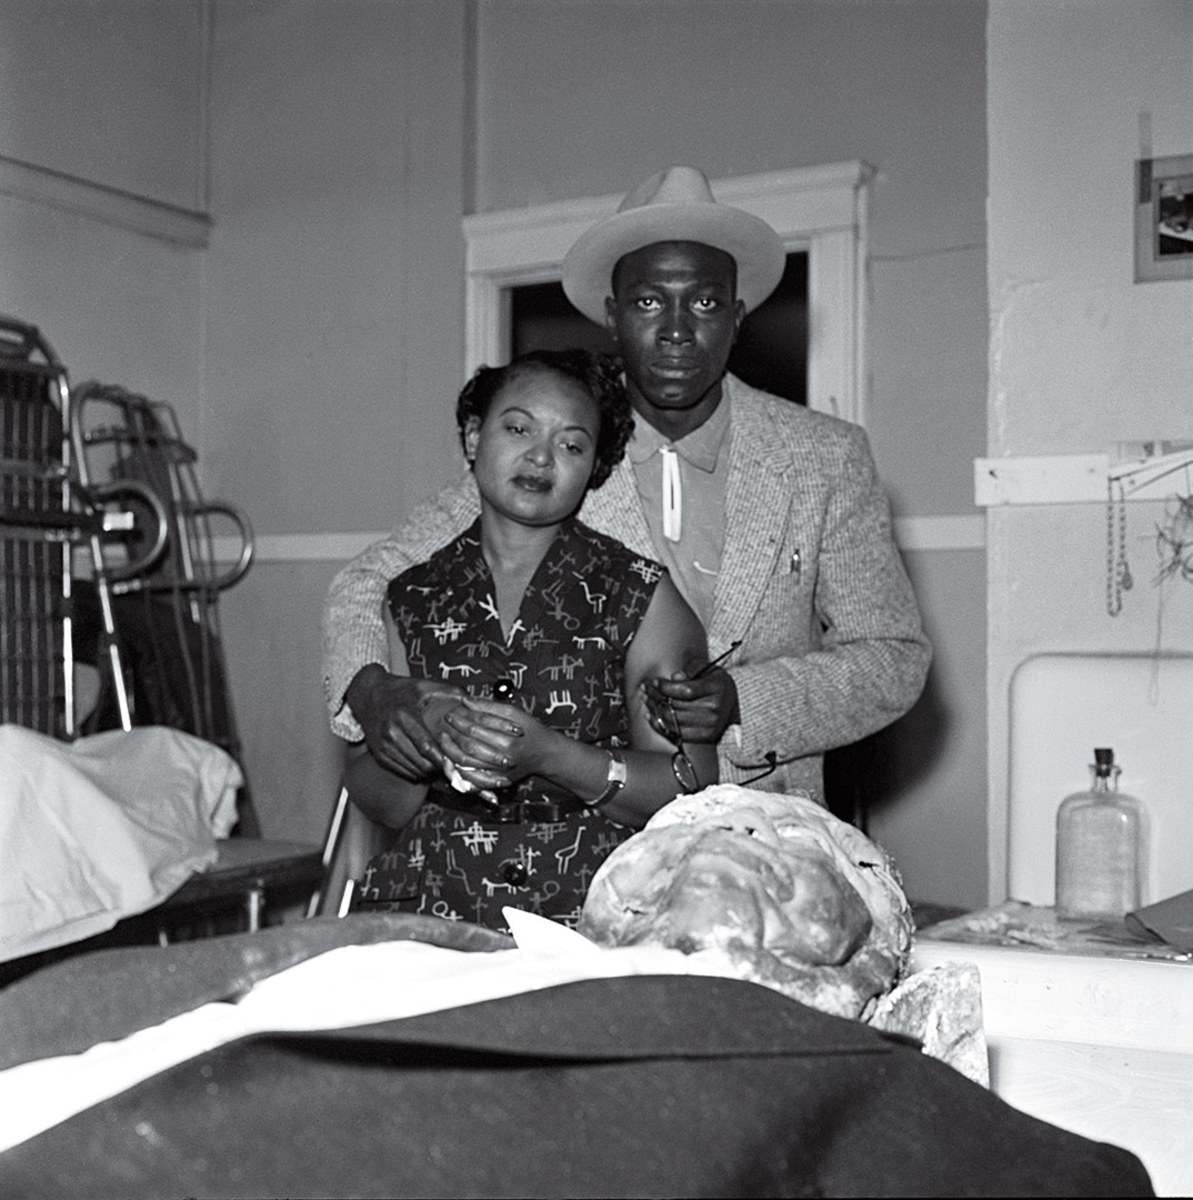 14 year old Boy Beaten and Shot in the Head for Whistling at a White Woman in 1955, The Story of Emmett Till.